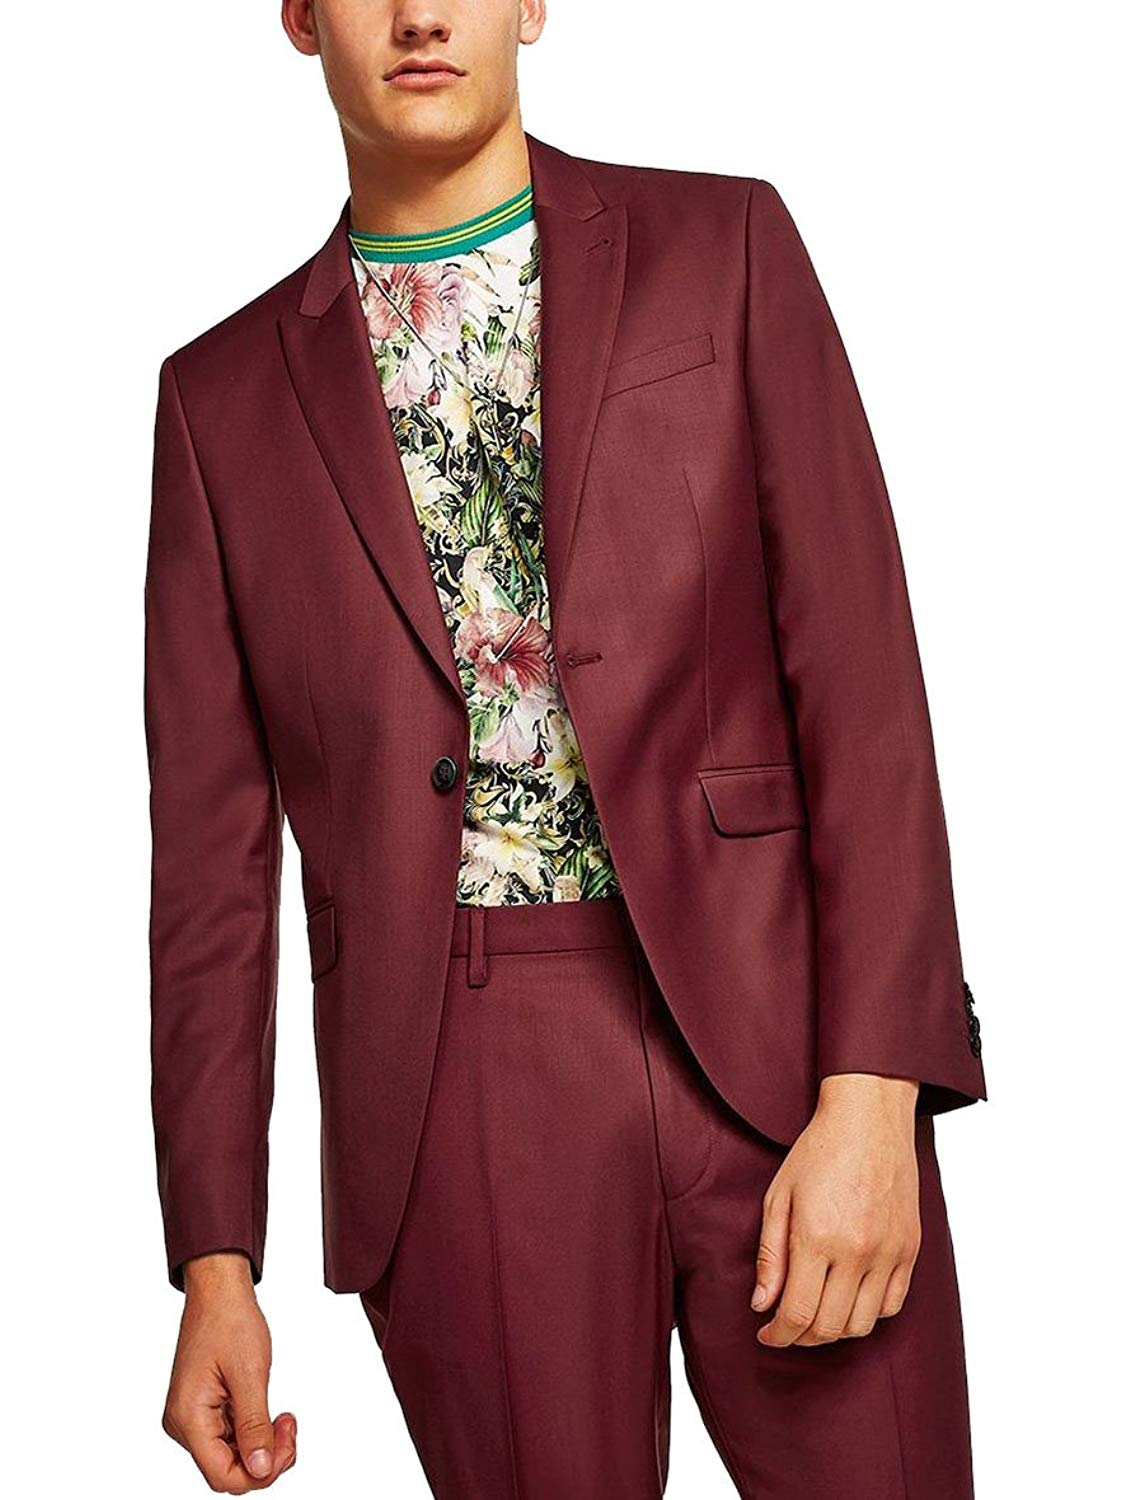 Cheap Prom Pant Suits For Girls Find Prom Pant Suits For Girls